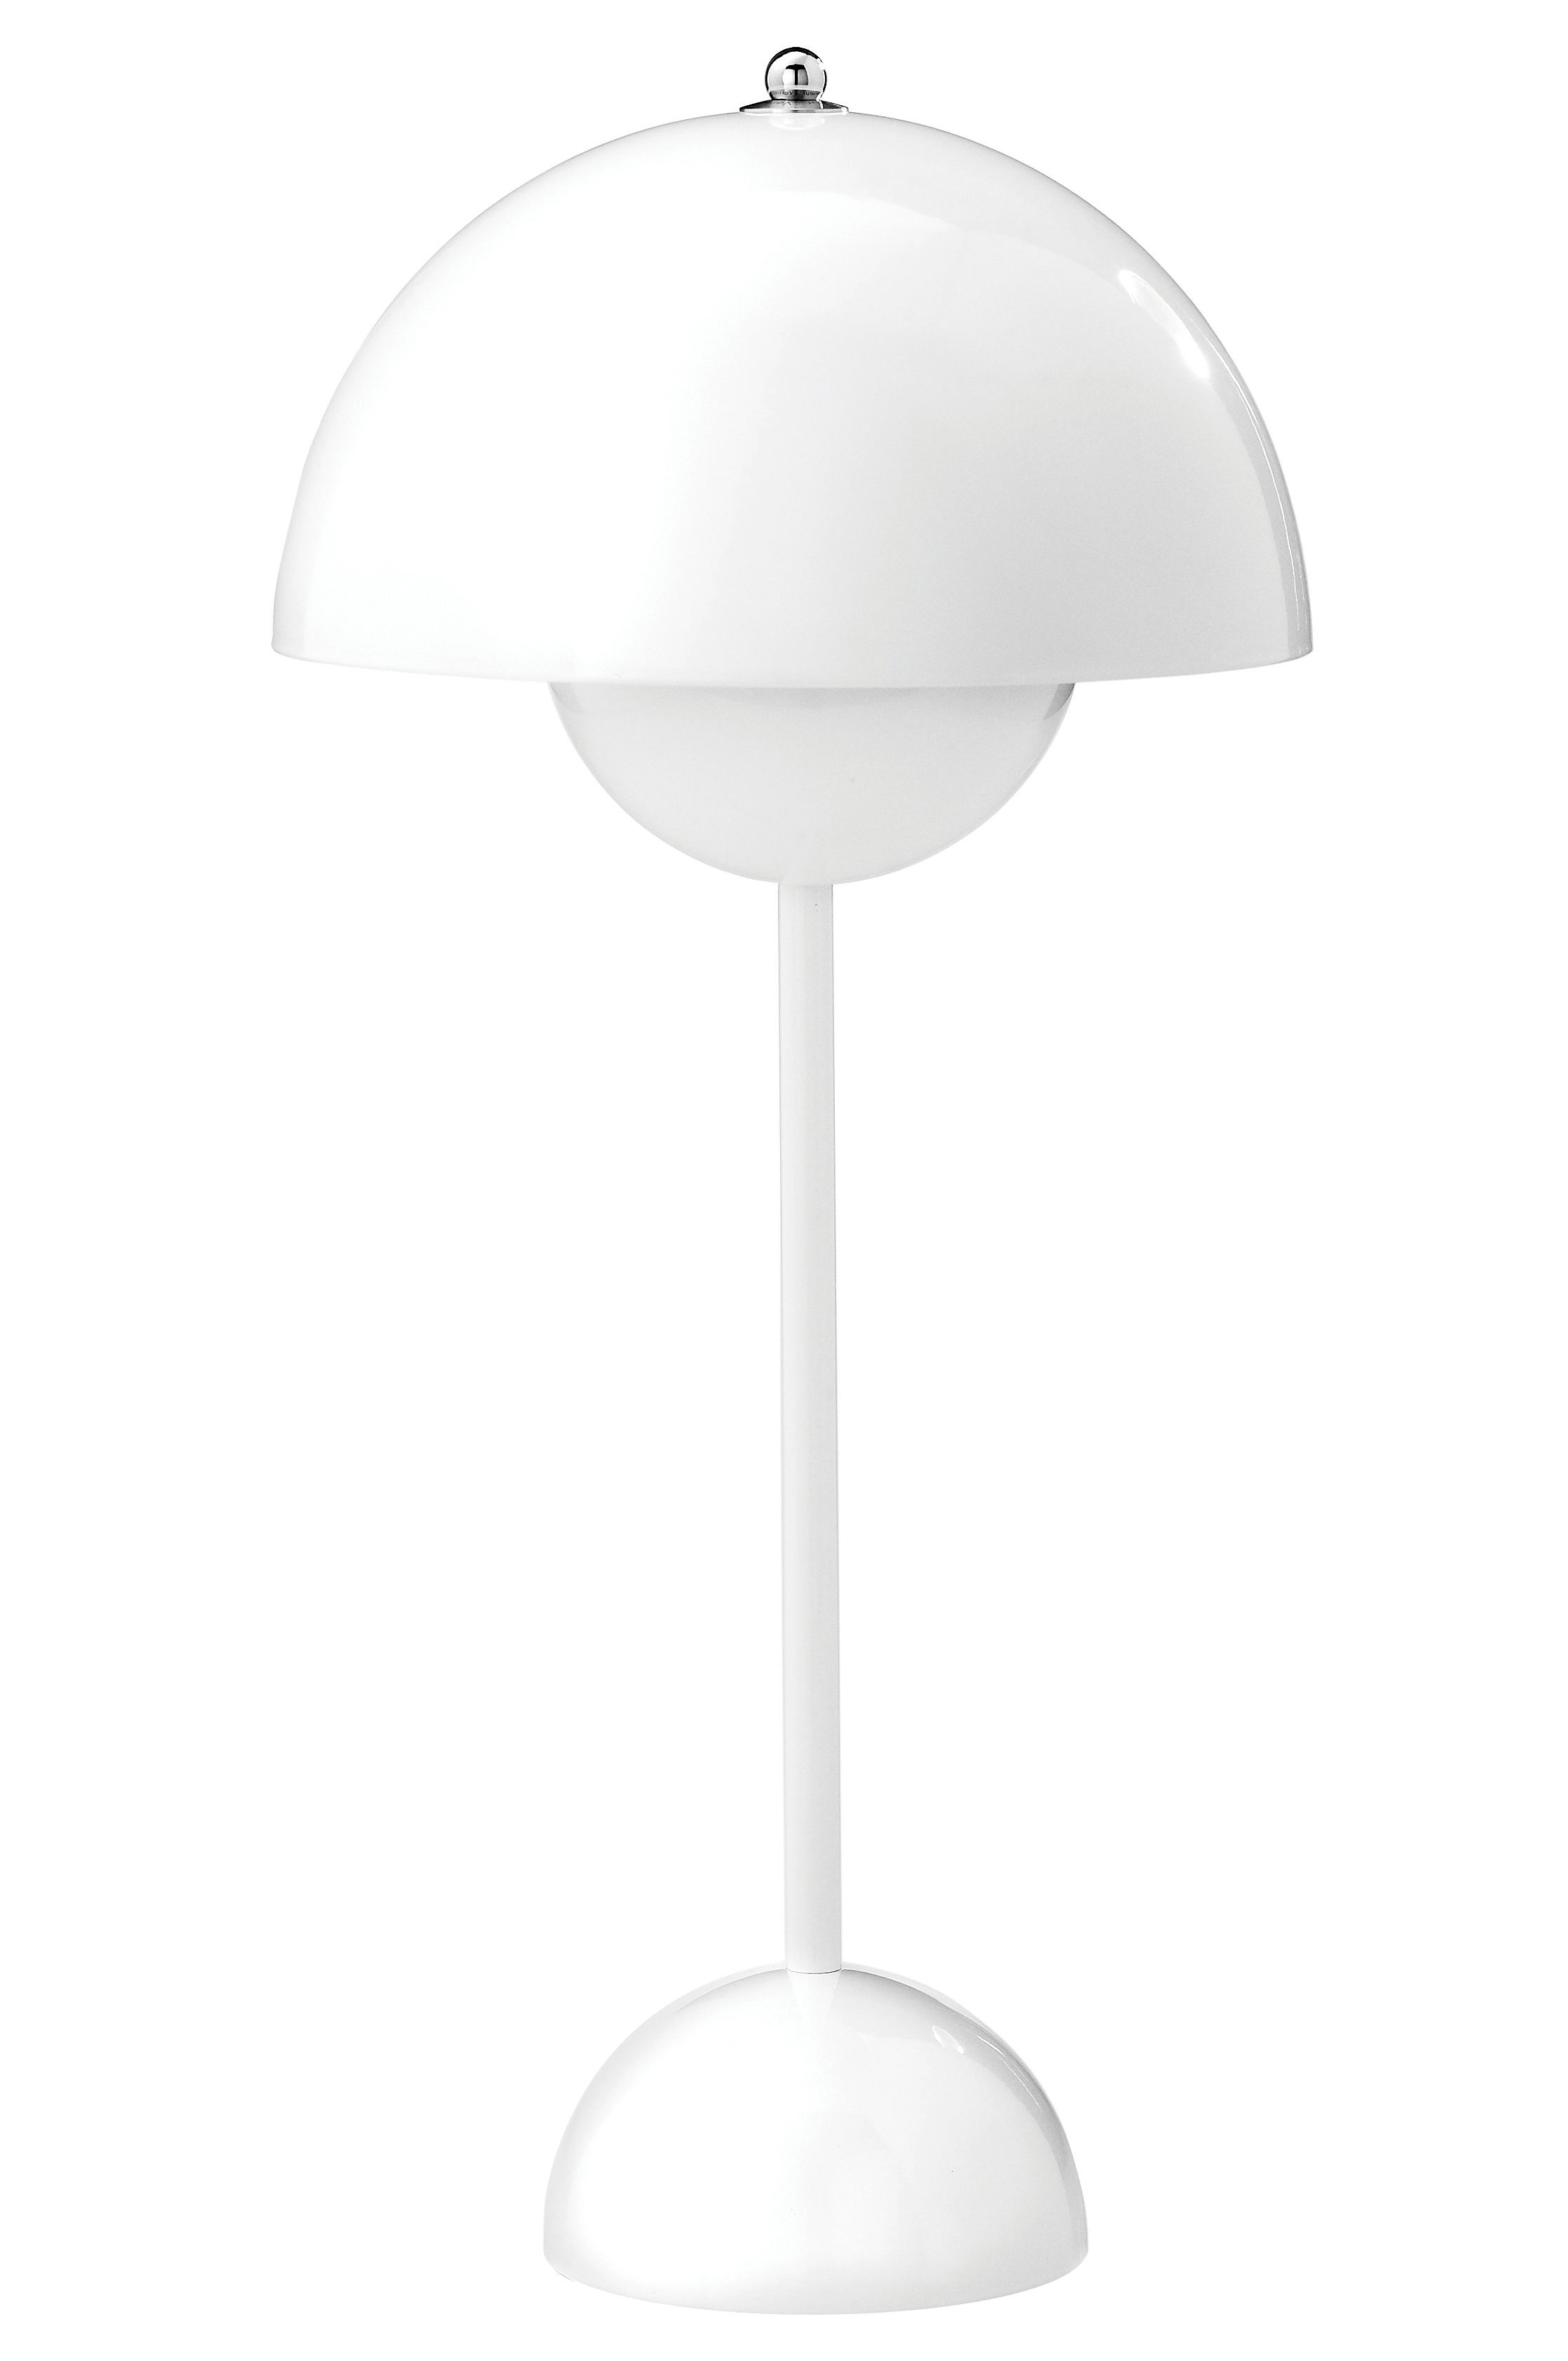 Lighting - Table Lamps - FlowerPot VP3 Table lamp by &tradition - White - Lacquered aluminium